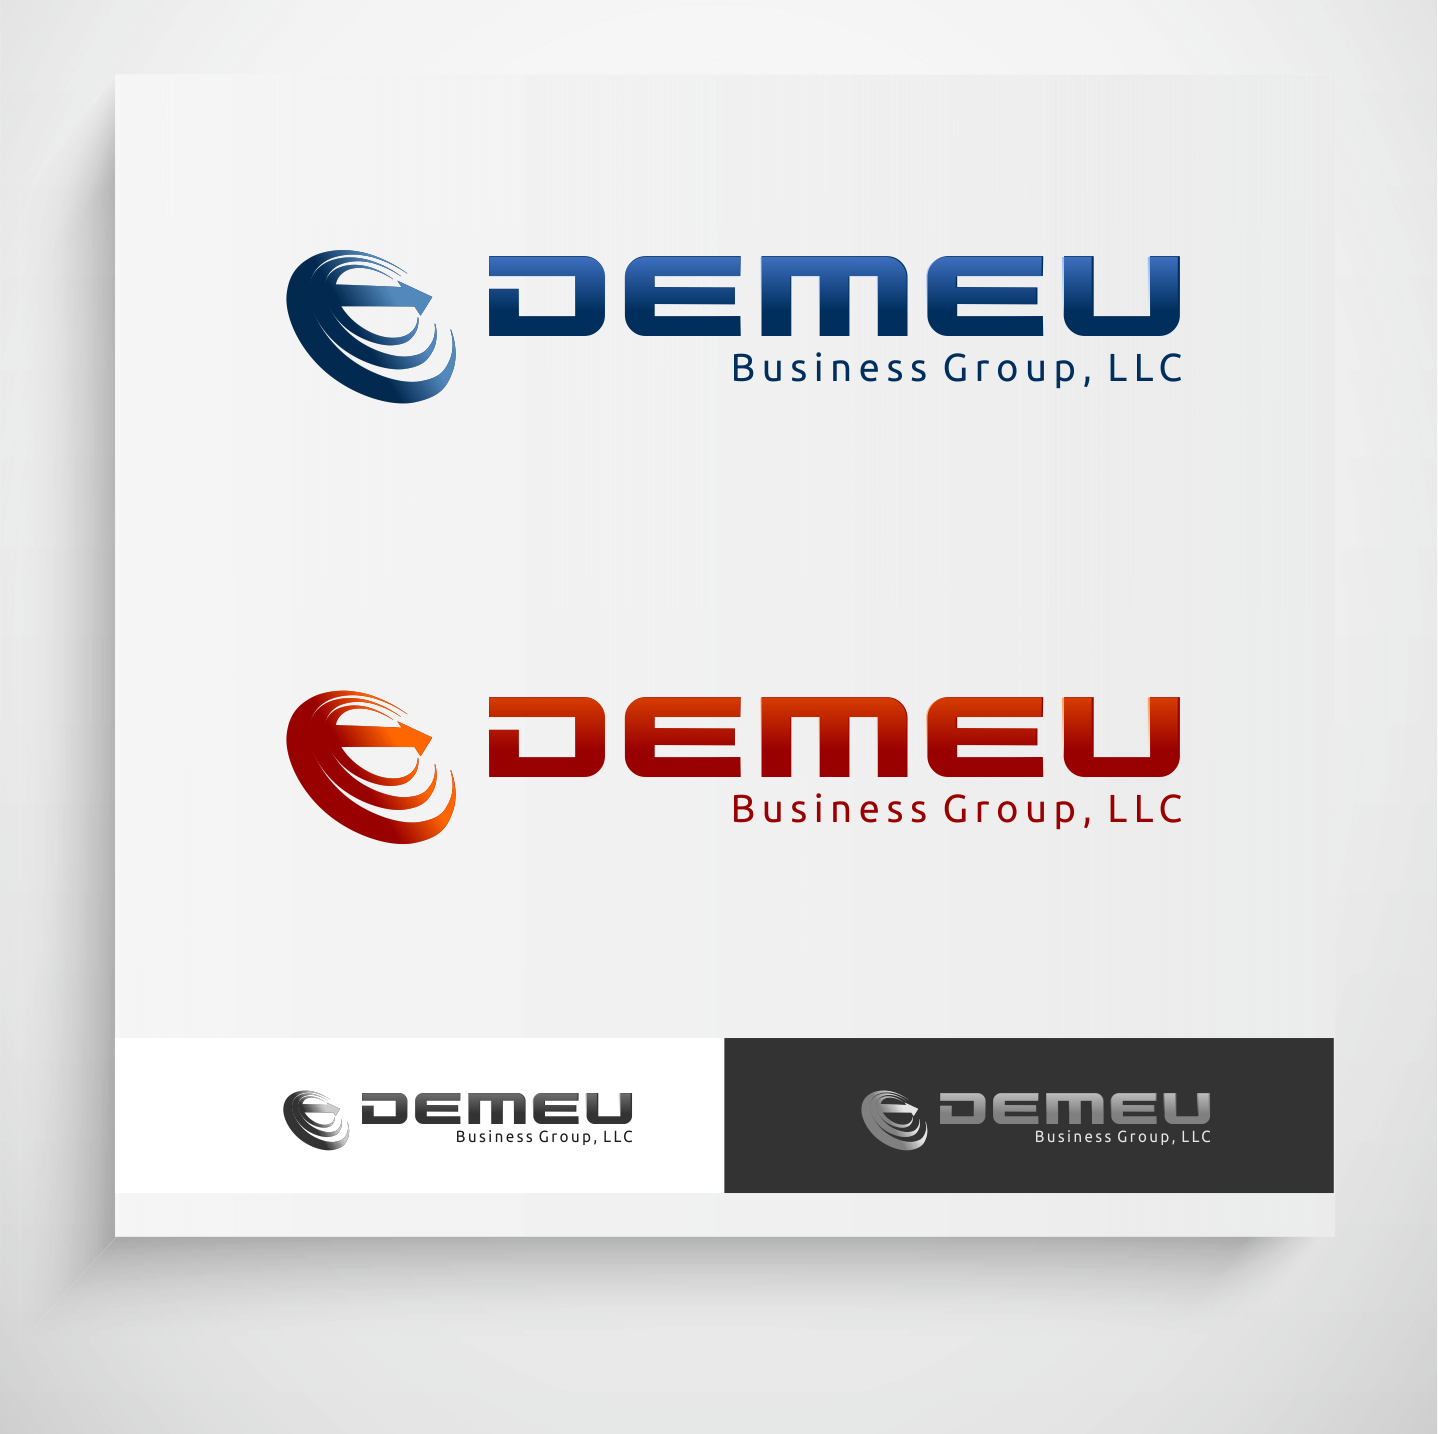 Logo Design by Krzysztof Mokanek - Entry No. 70 in the Logo Design Contest Captivating Logo Design for DEMEU Business Group.